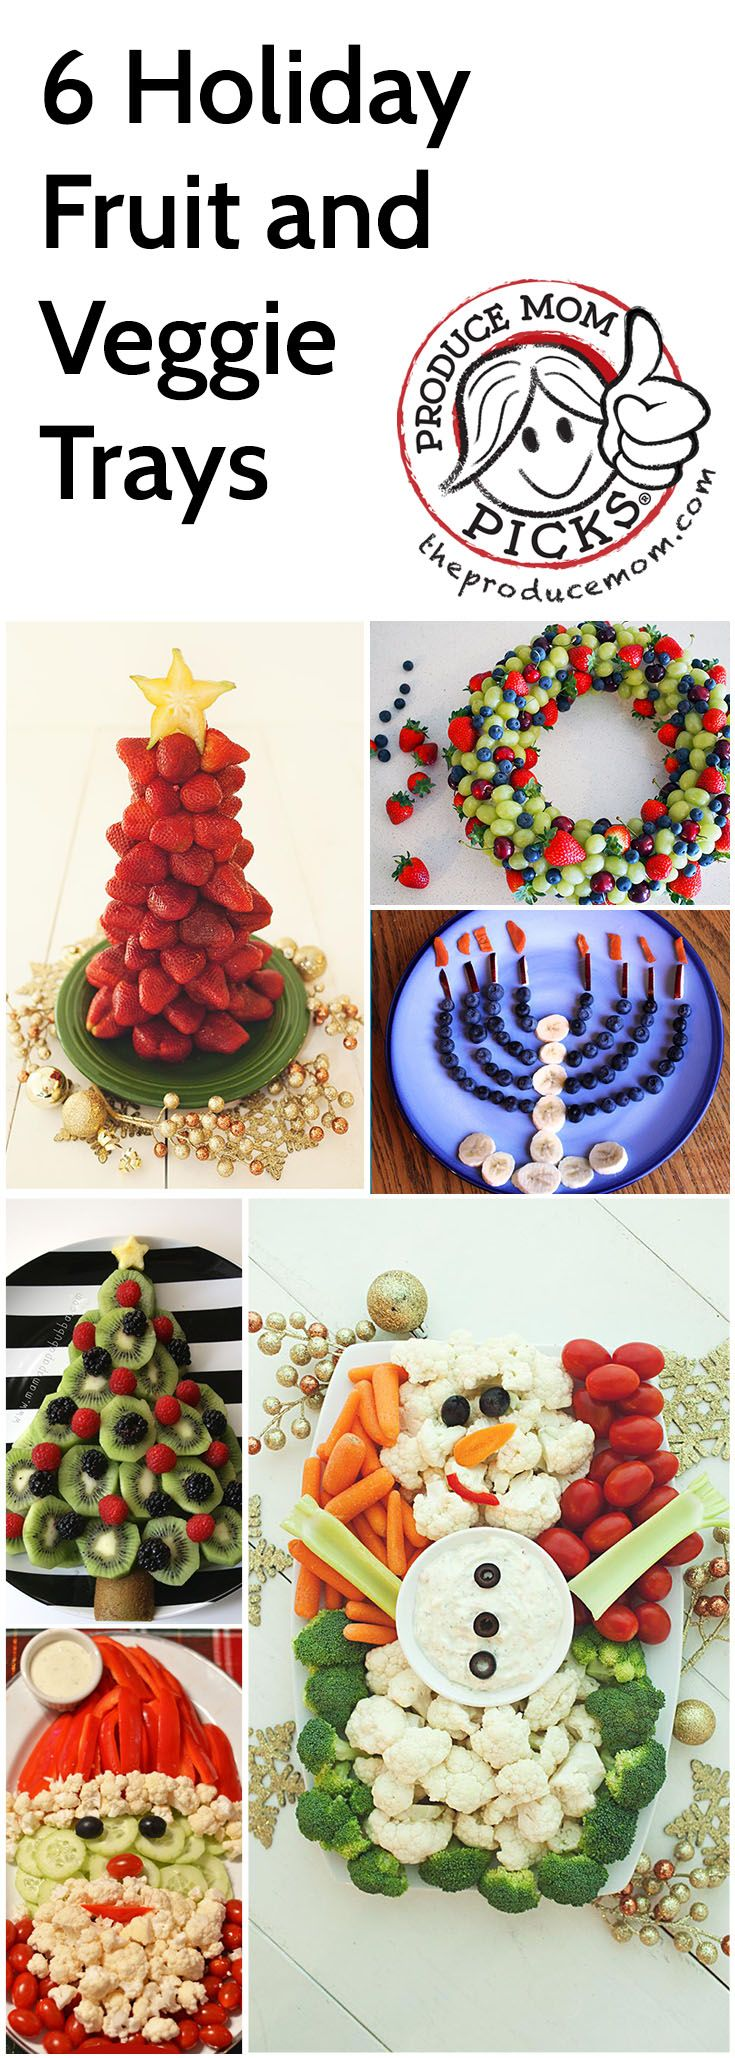 6 Holiday Fruit and Veggie Trays from The Produce Mom